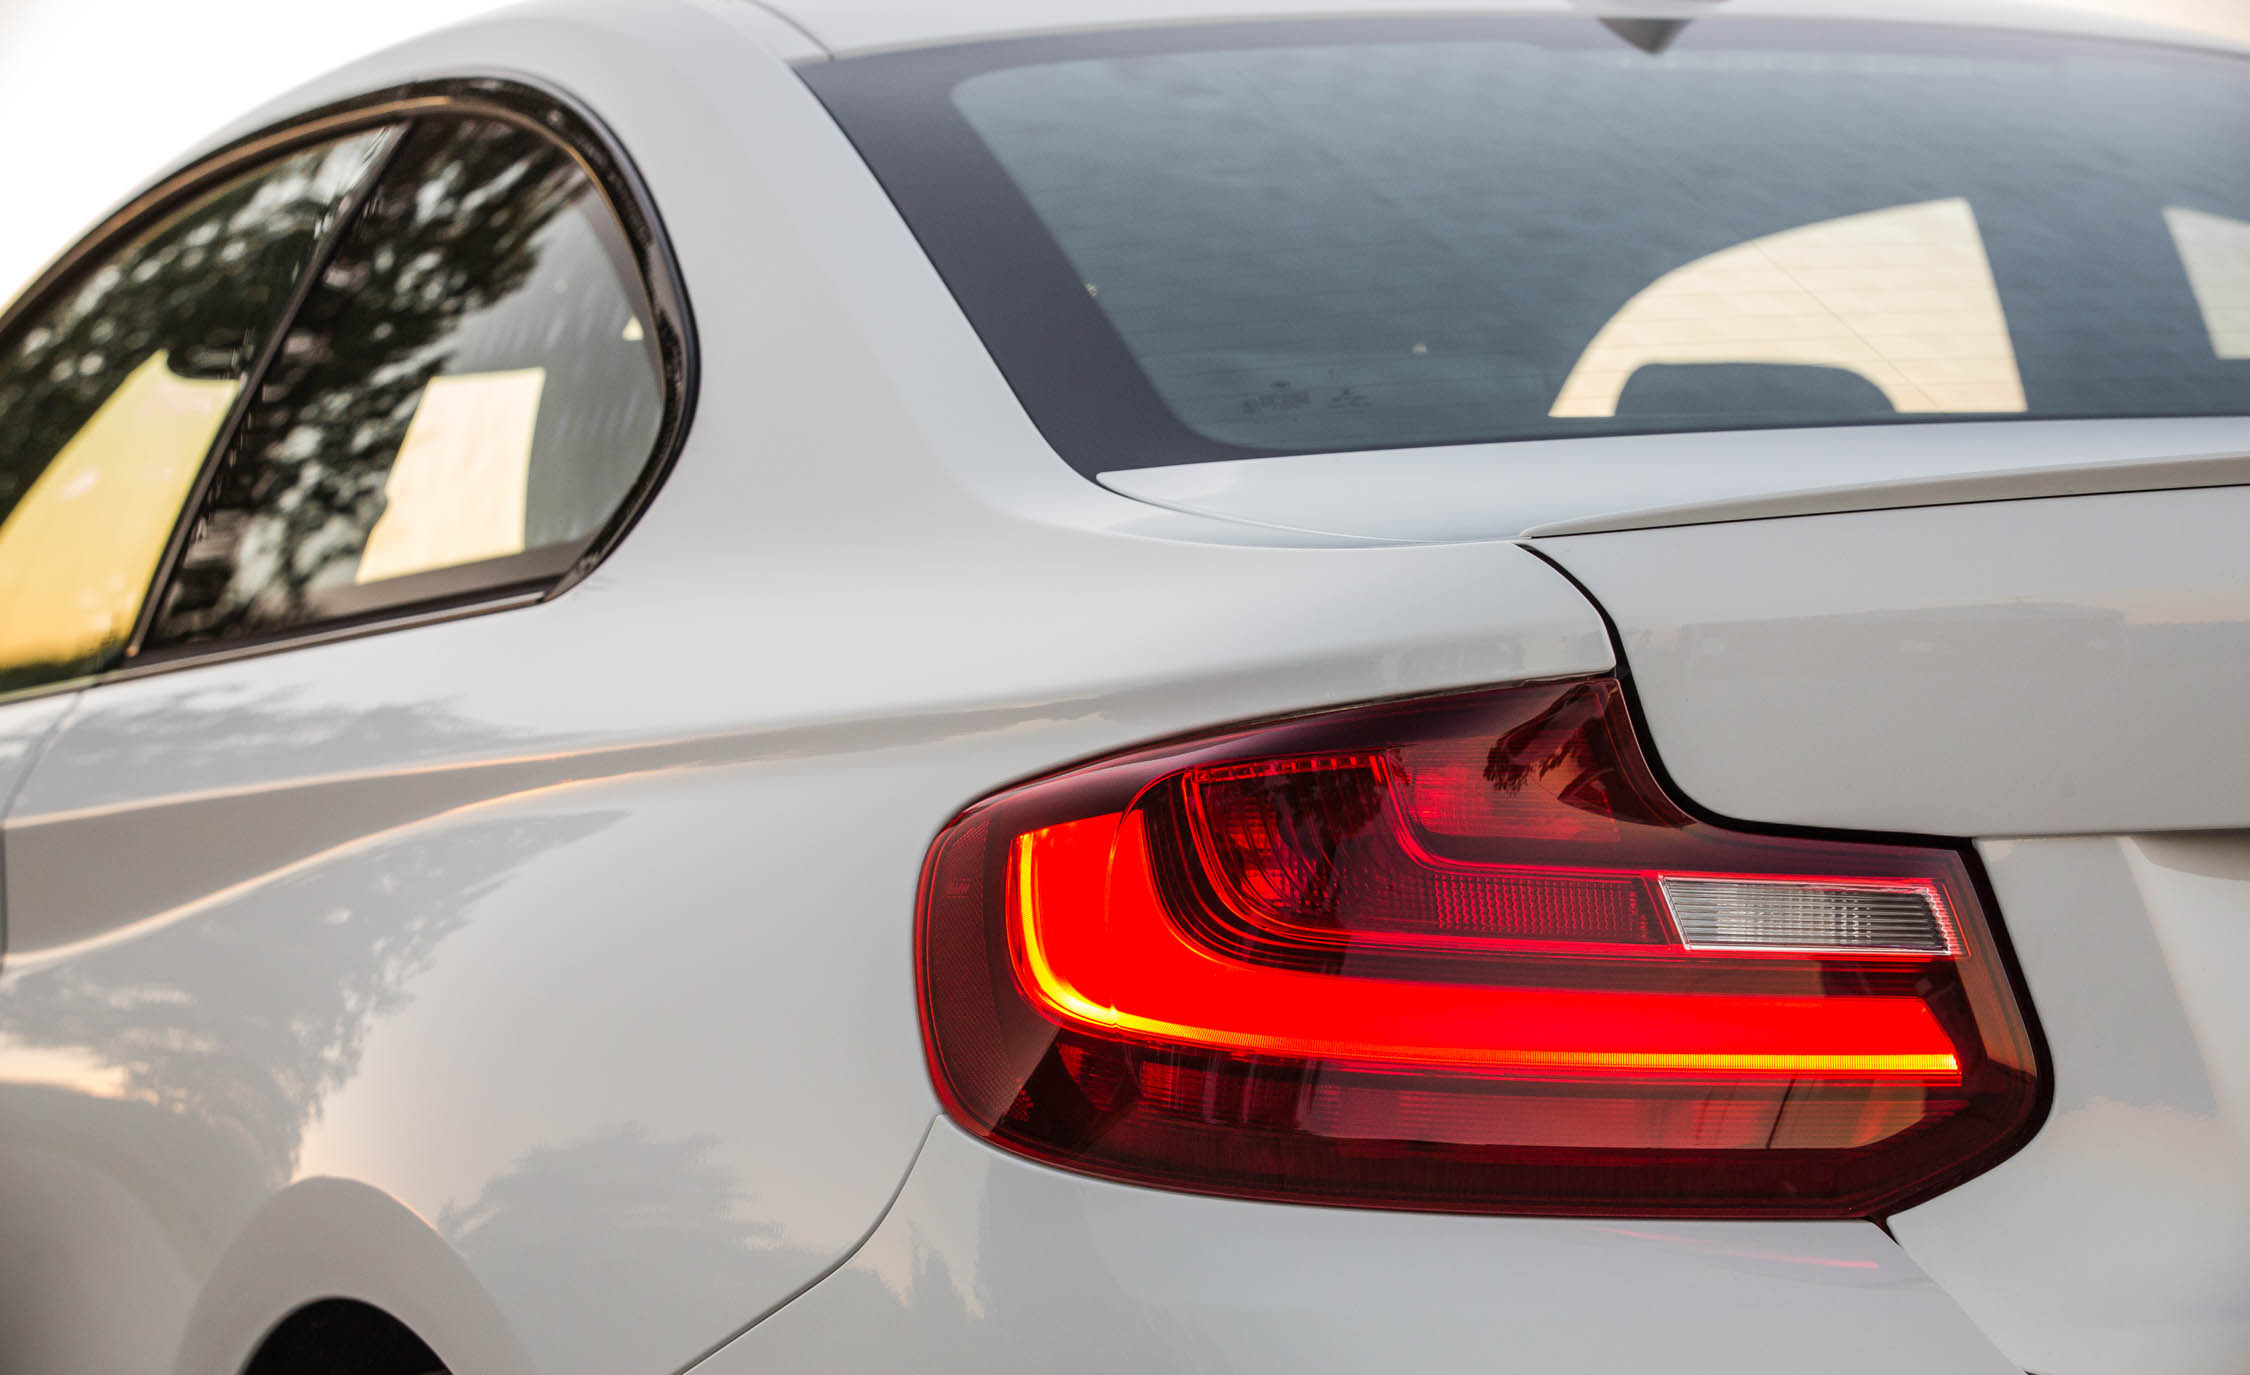 2017 BMW M240i Coupe Automatic Exterior View Taillight (View 20 of 36)